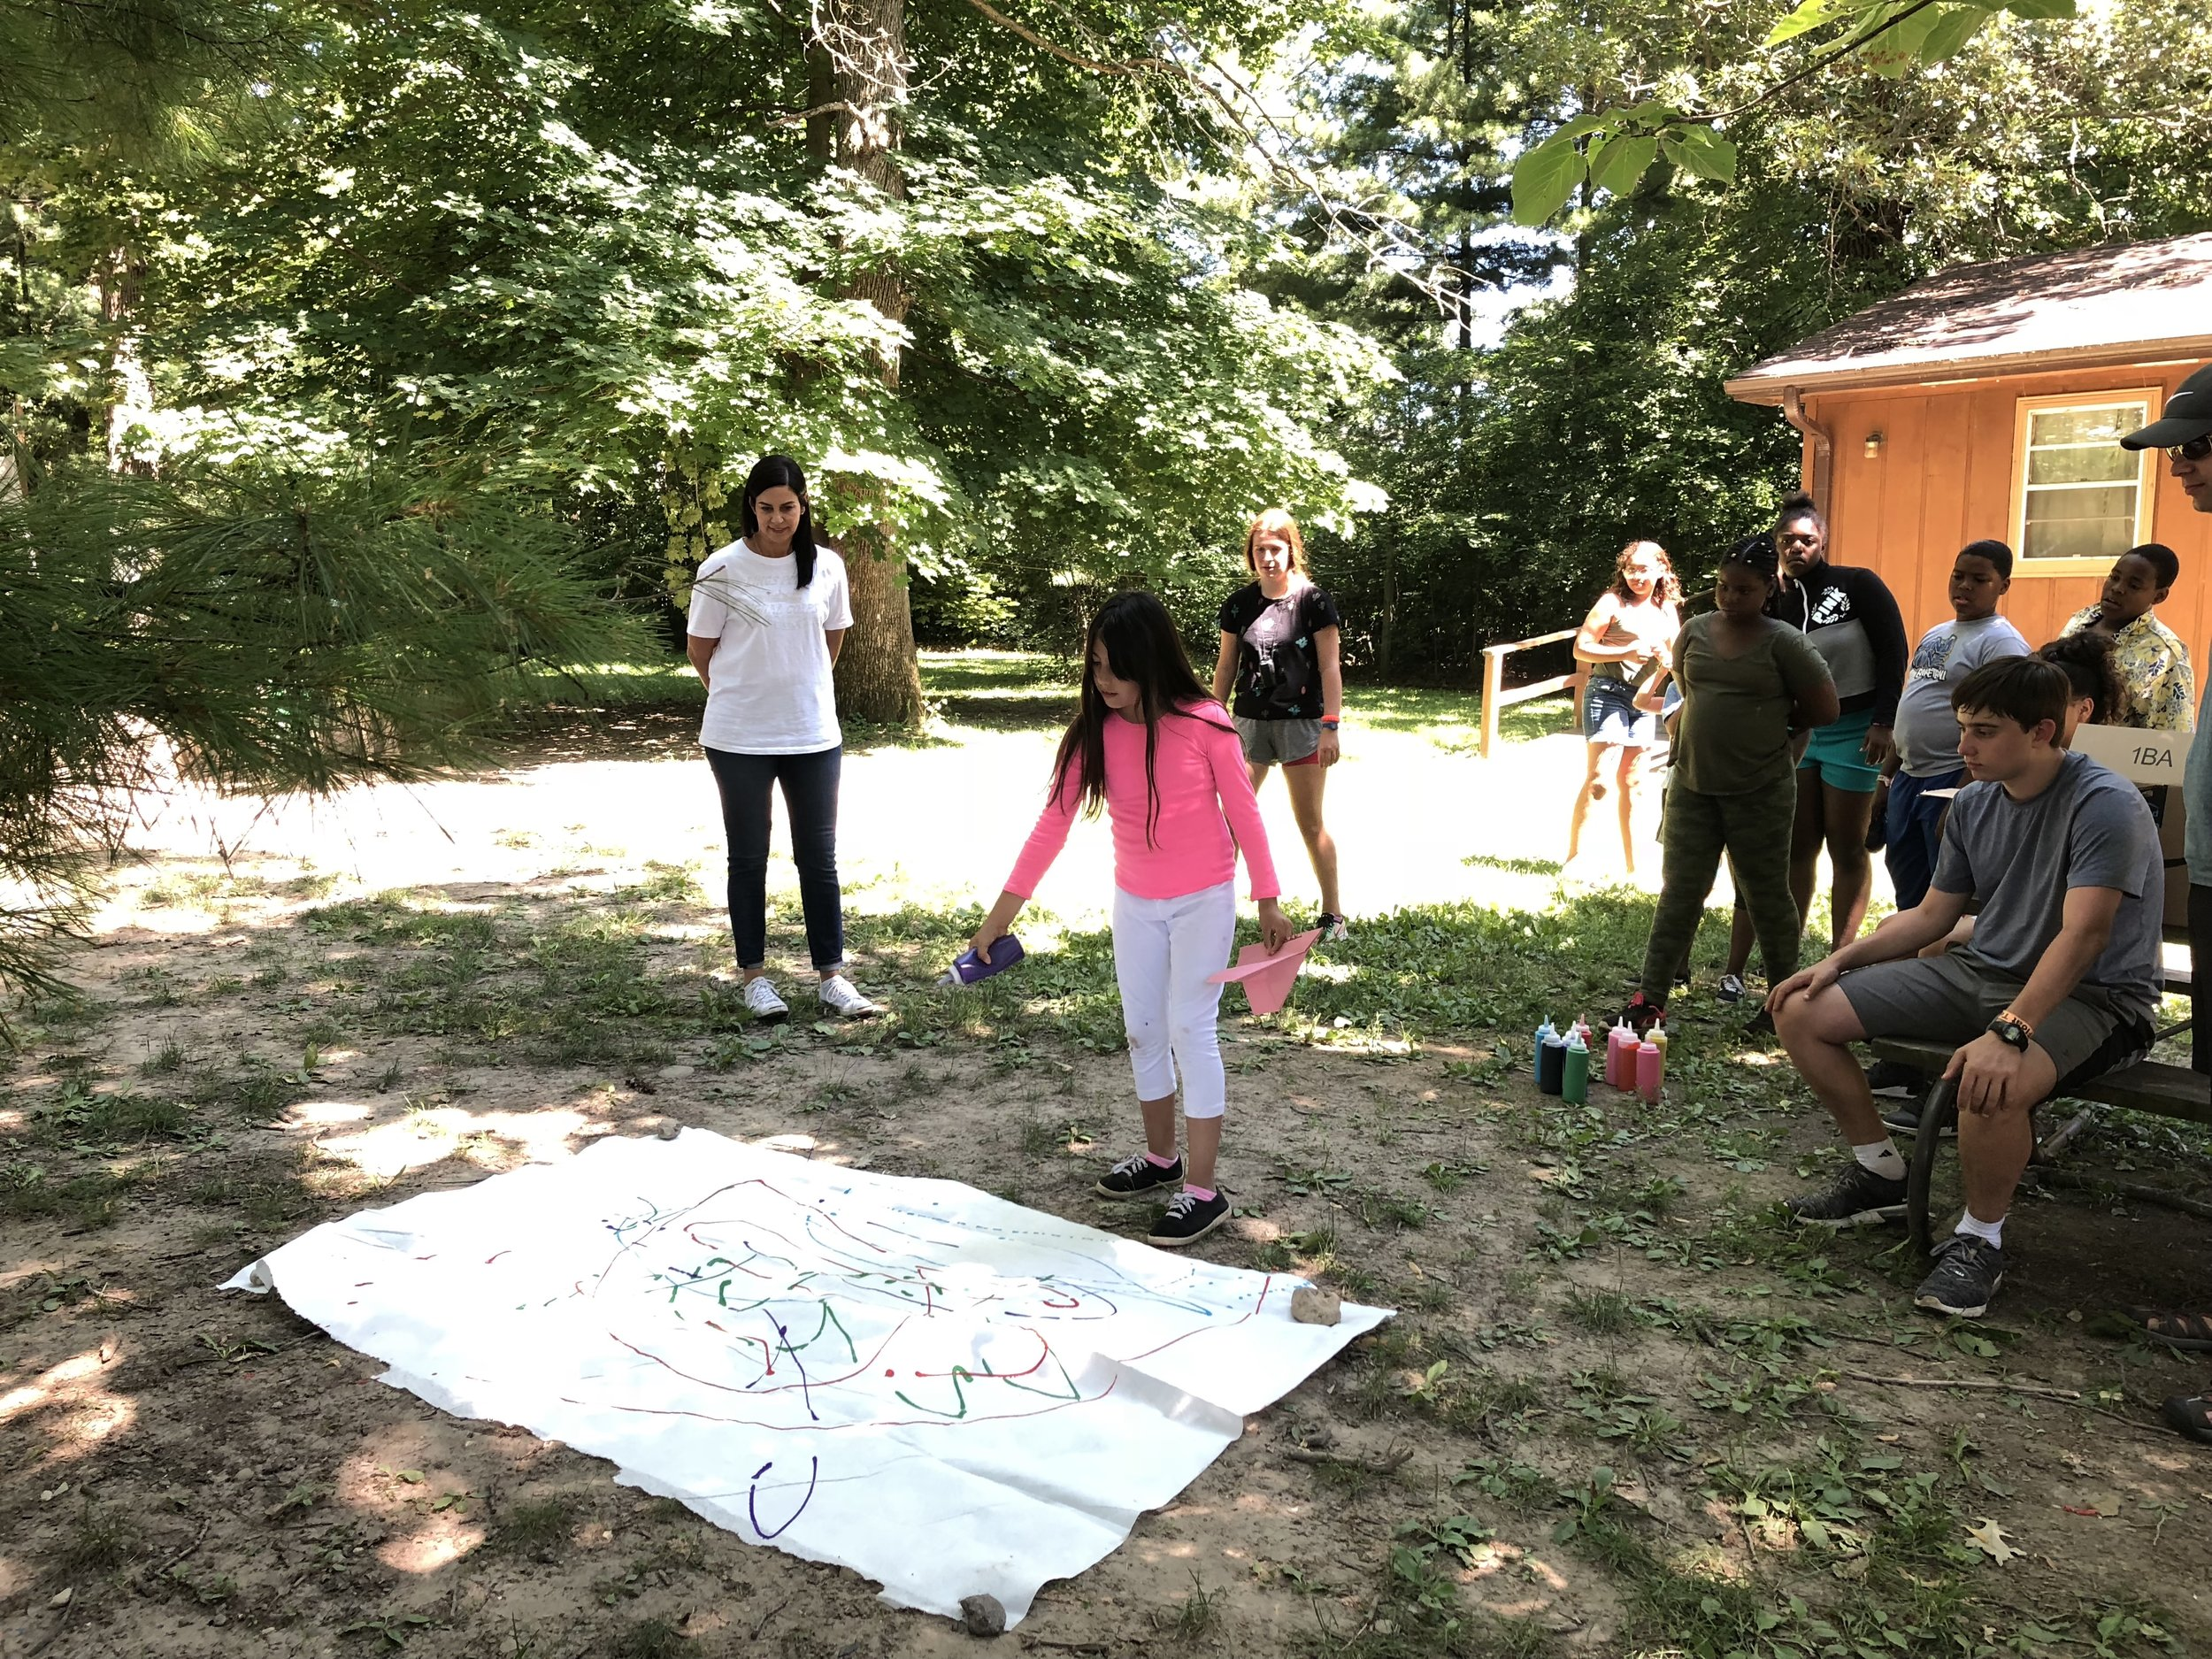 Volunteer - Share your interests and talents with campers during a Sunday Fun-Day at camp (Delavan, WI). Year-round volunteer opportunities are also available at the Settlement (Chicago, IL).